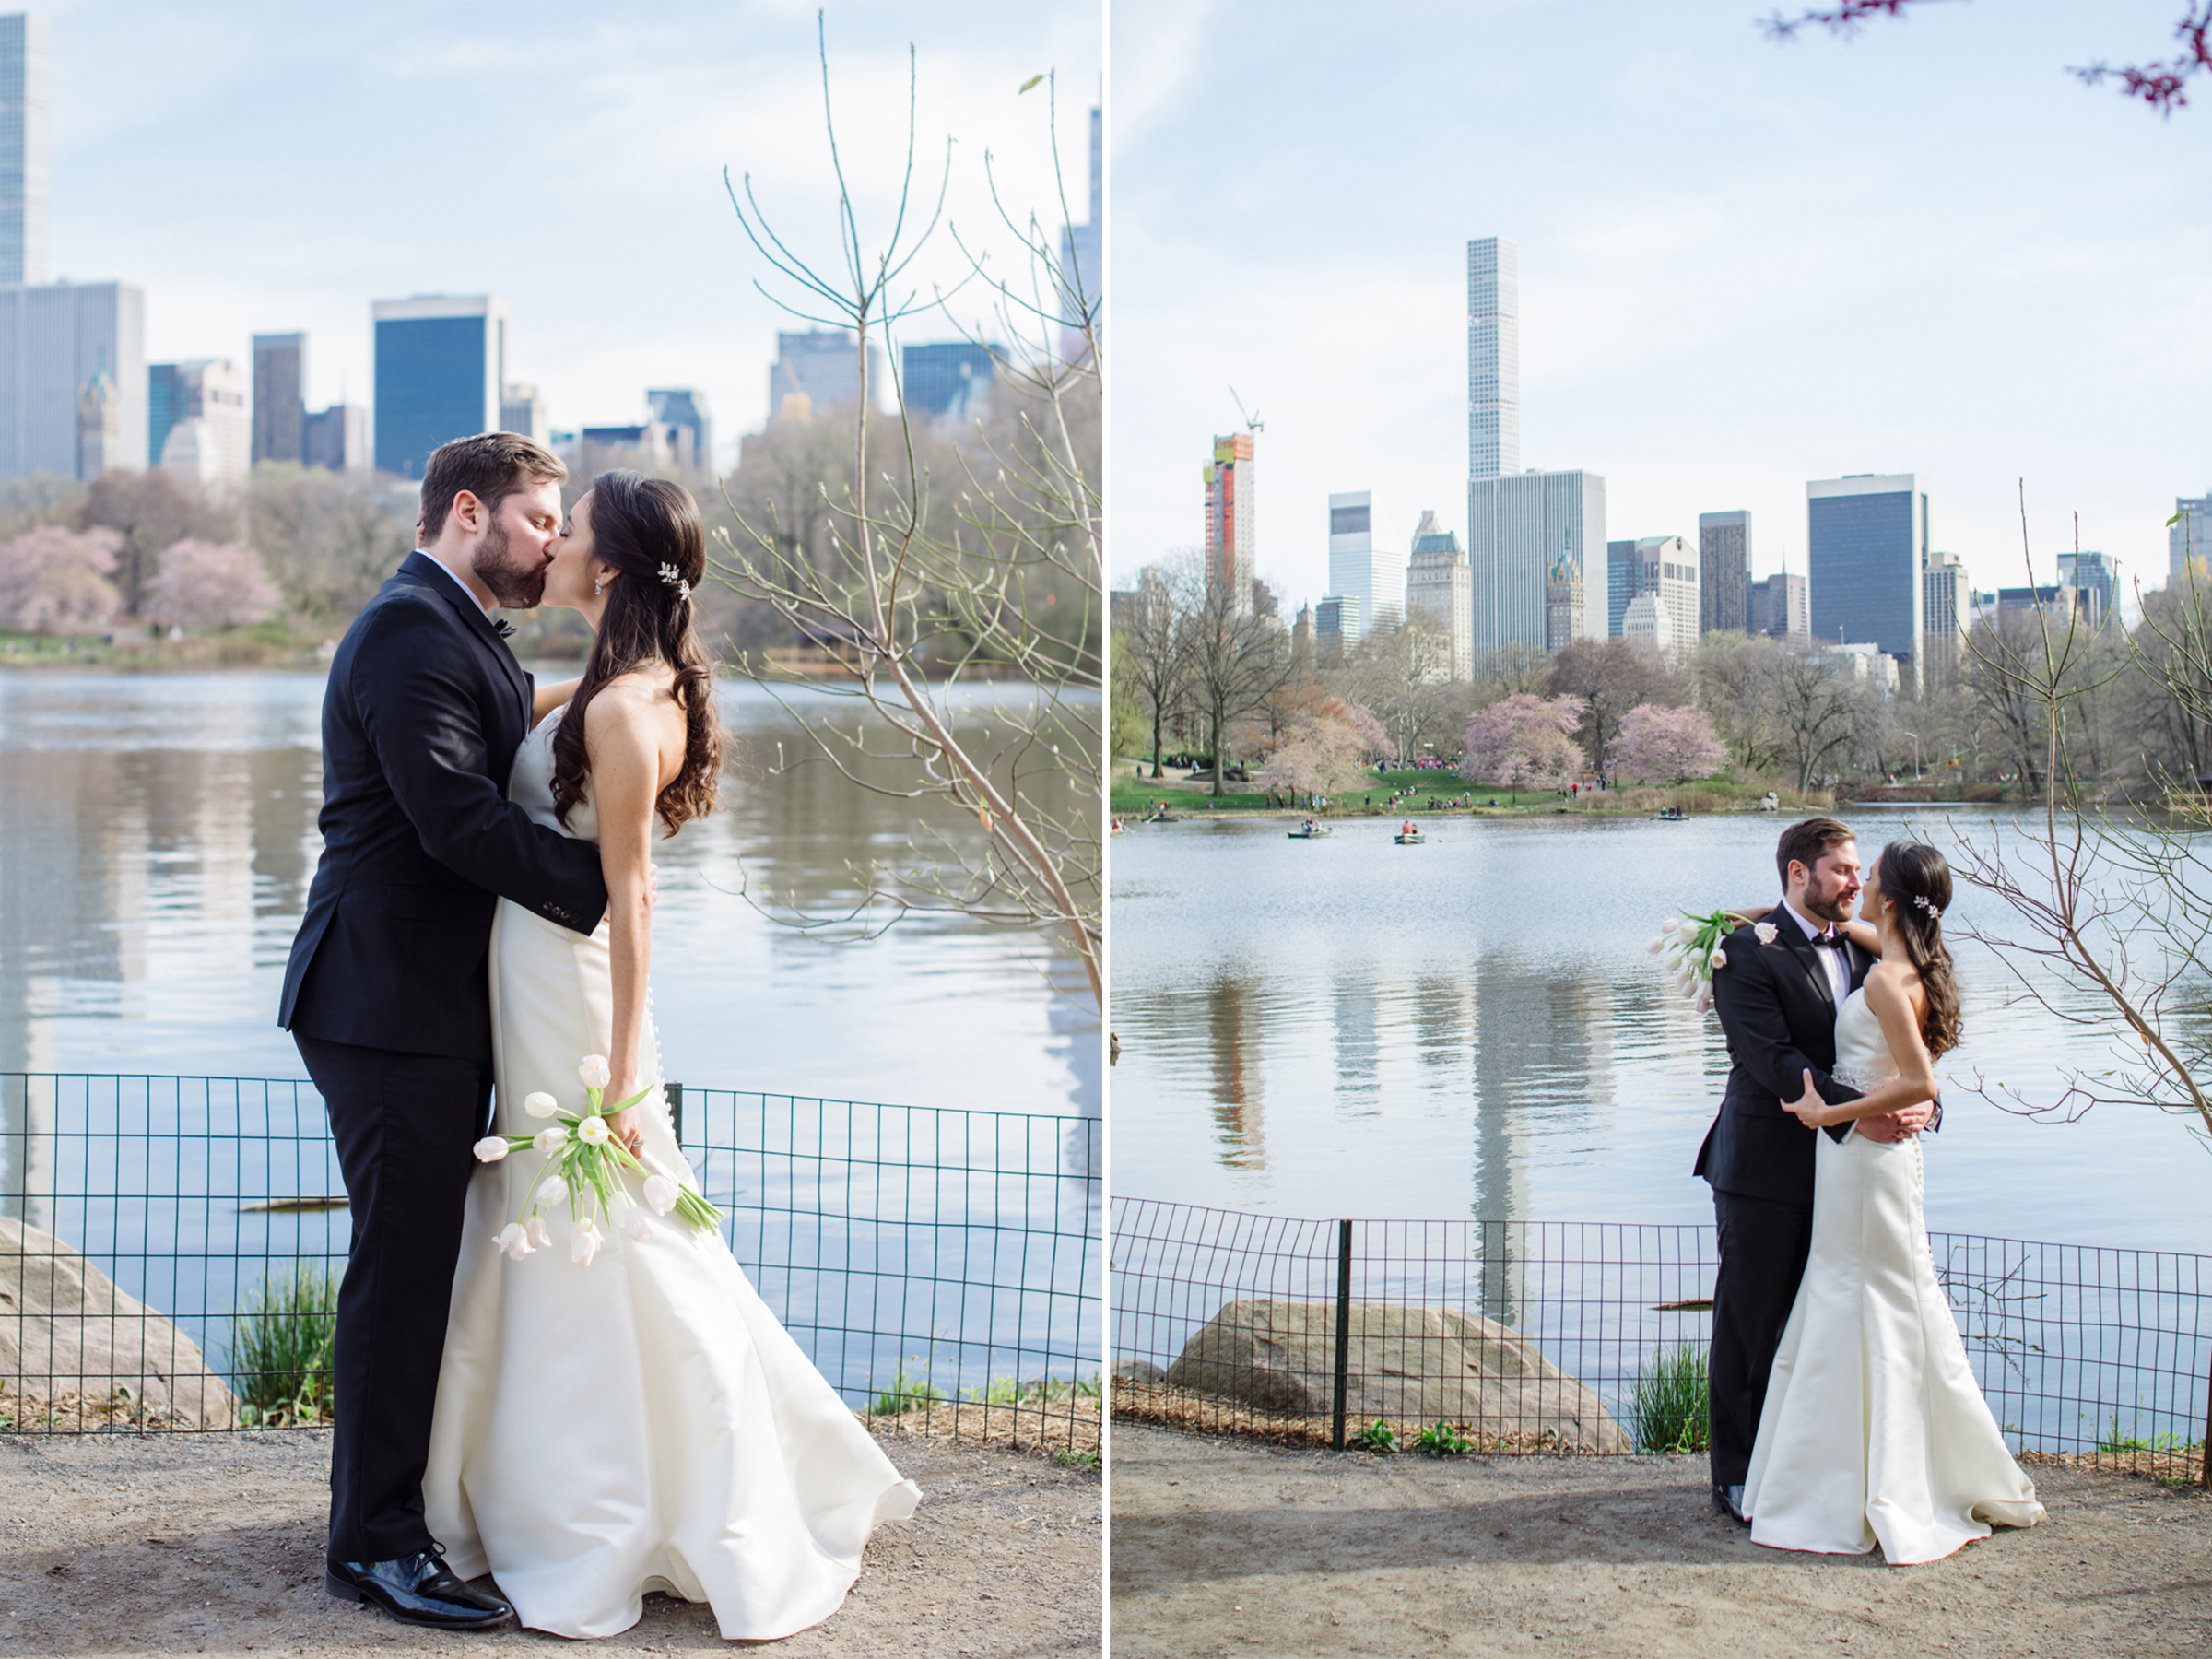 Anahi+David- Central Park Elopement NYC Skyline Portraits- New York City- Olivia Christina Photo.jpg